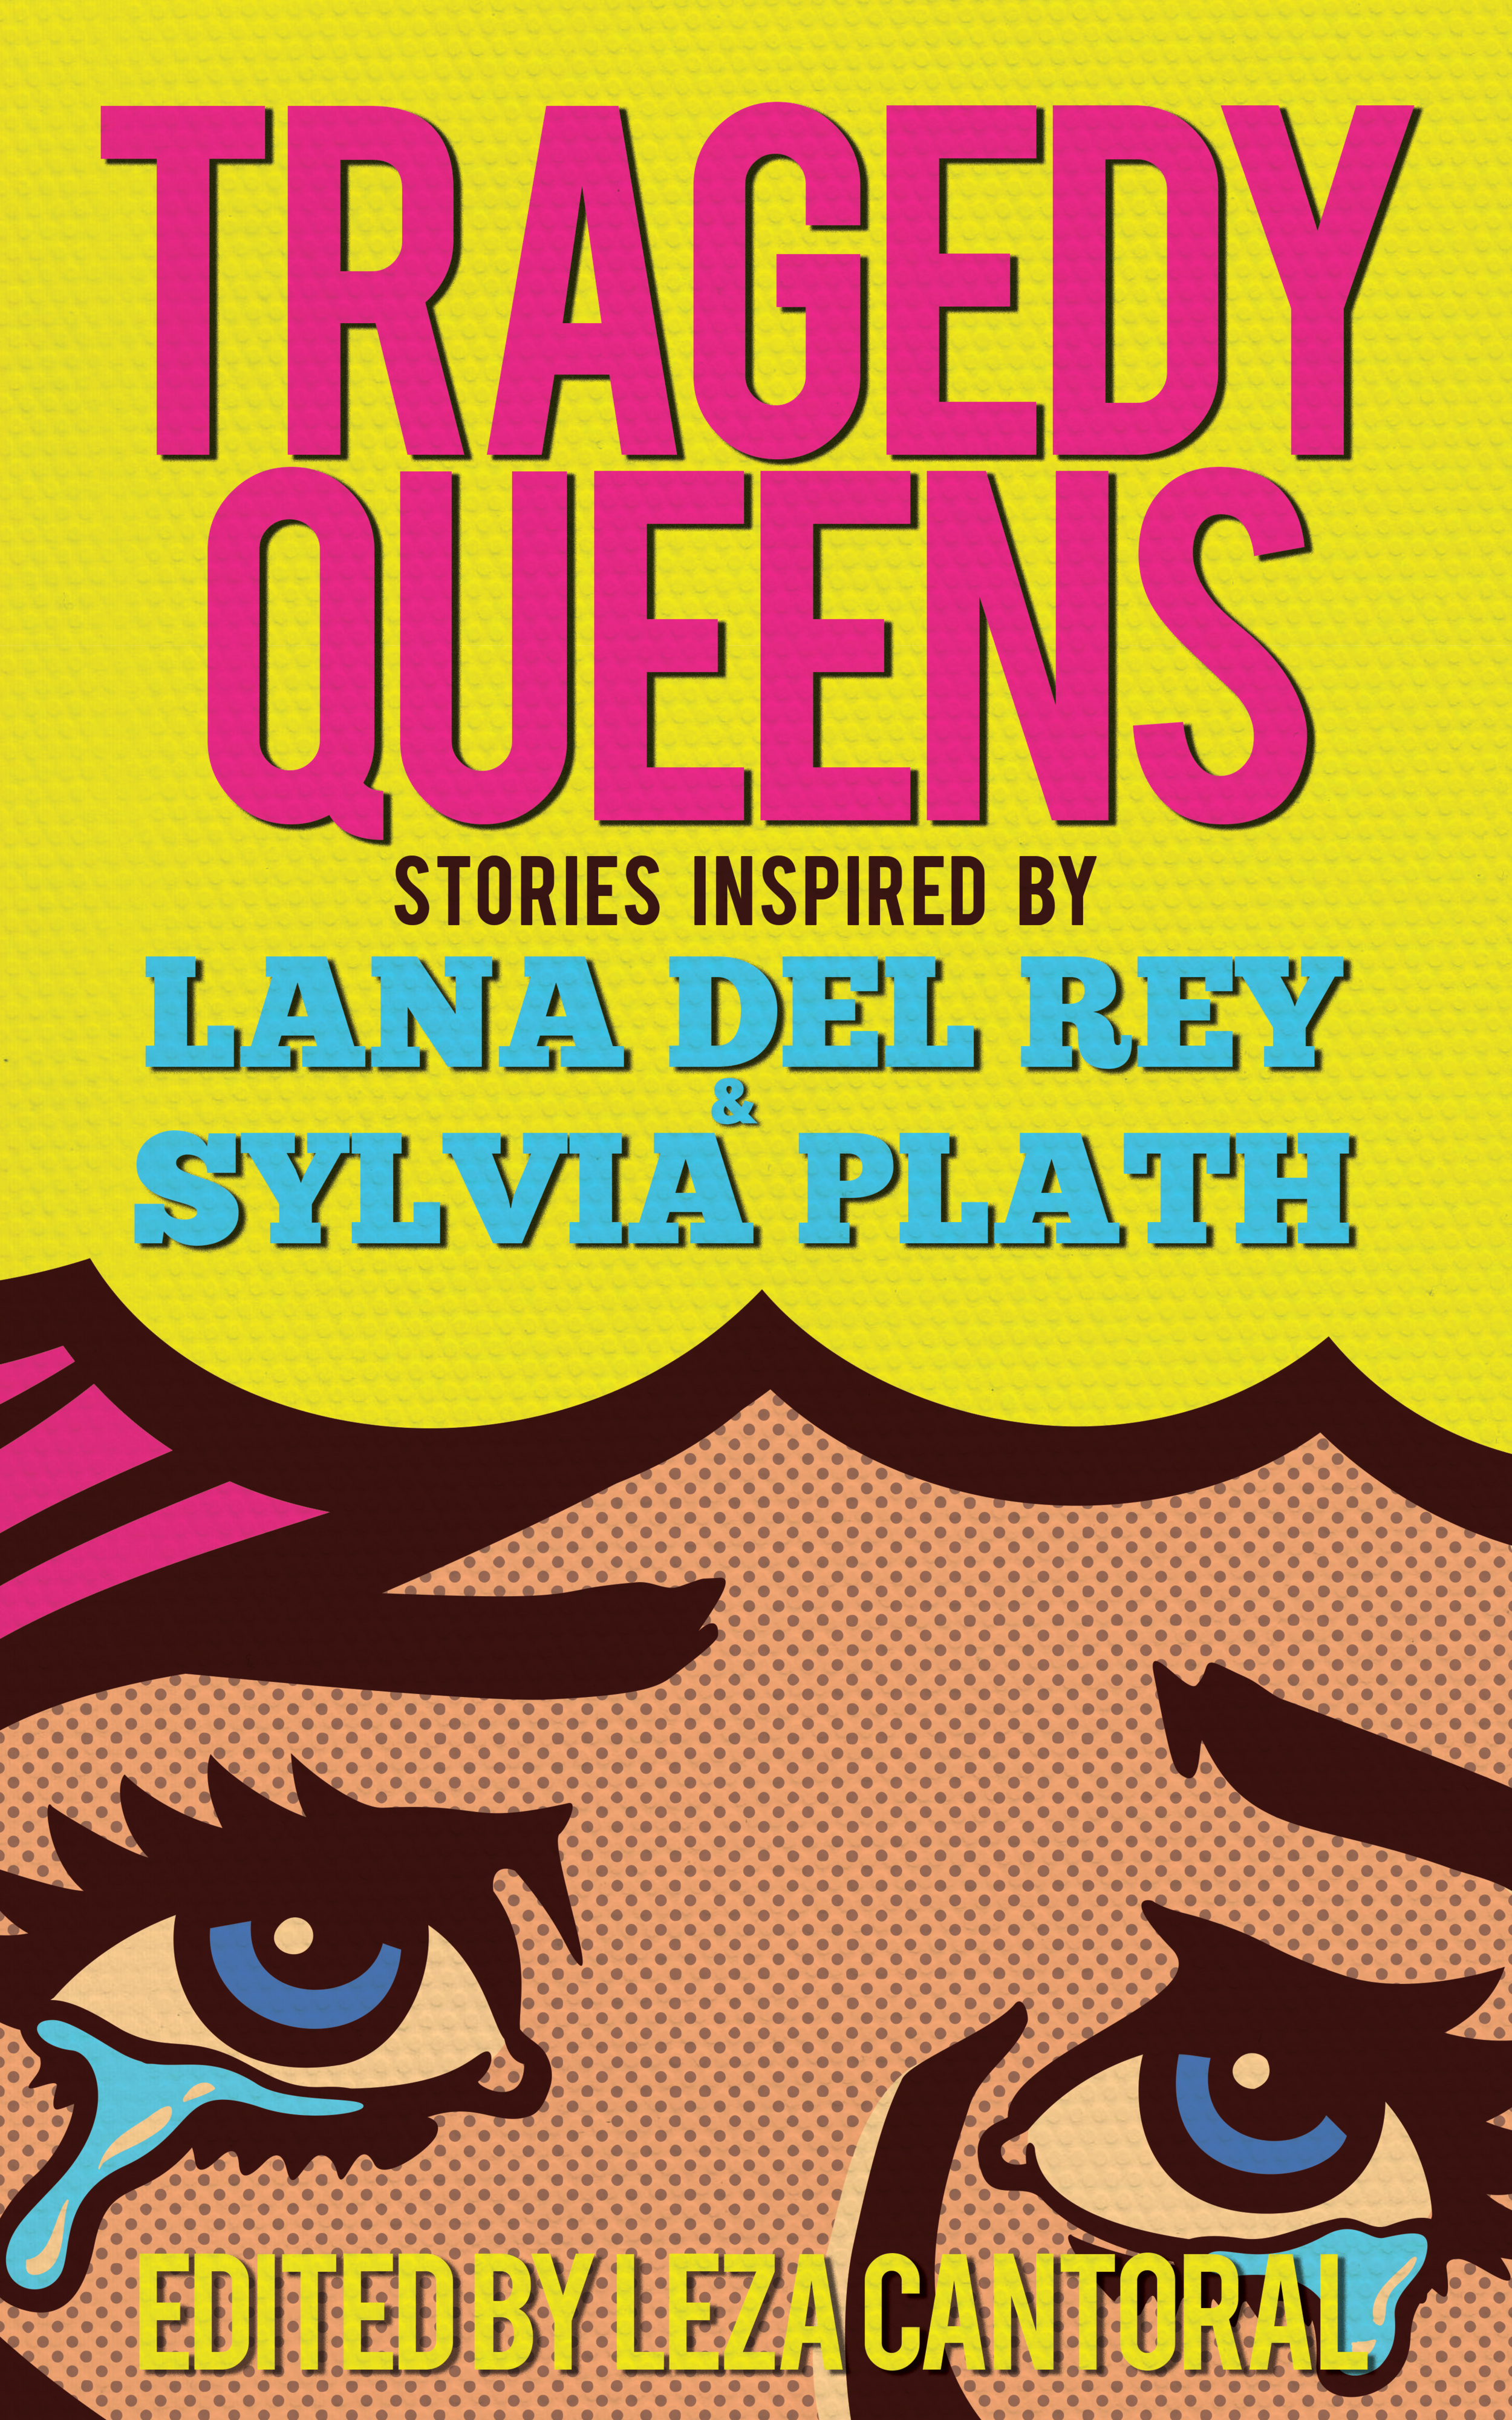 Tragedy Queens High res (2).png